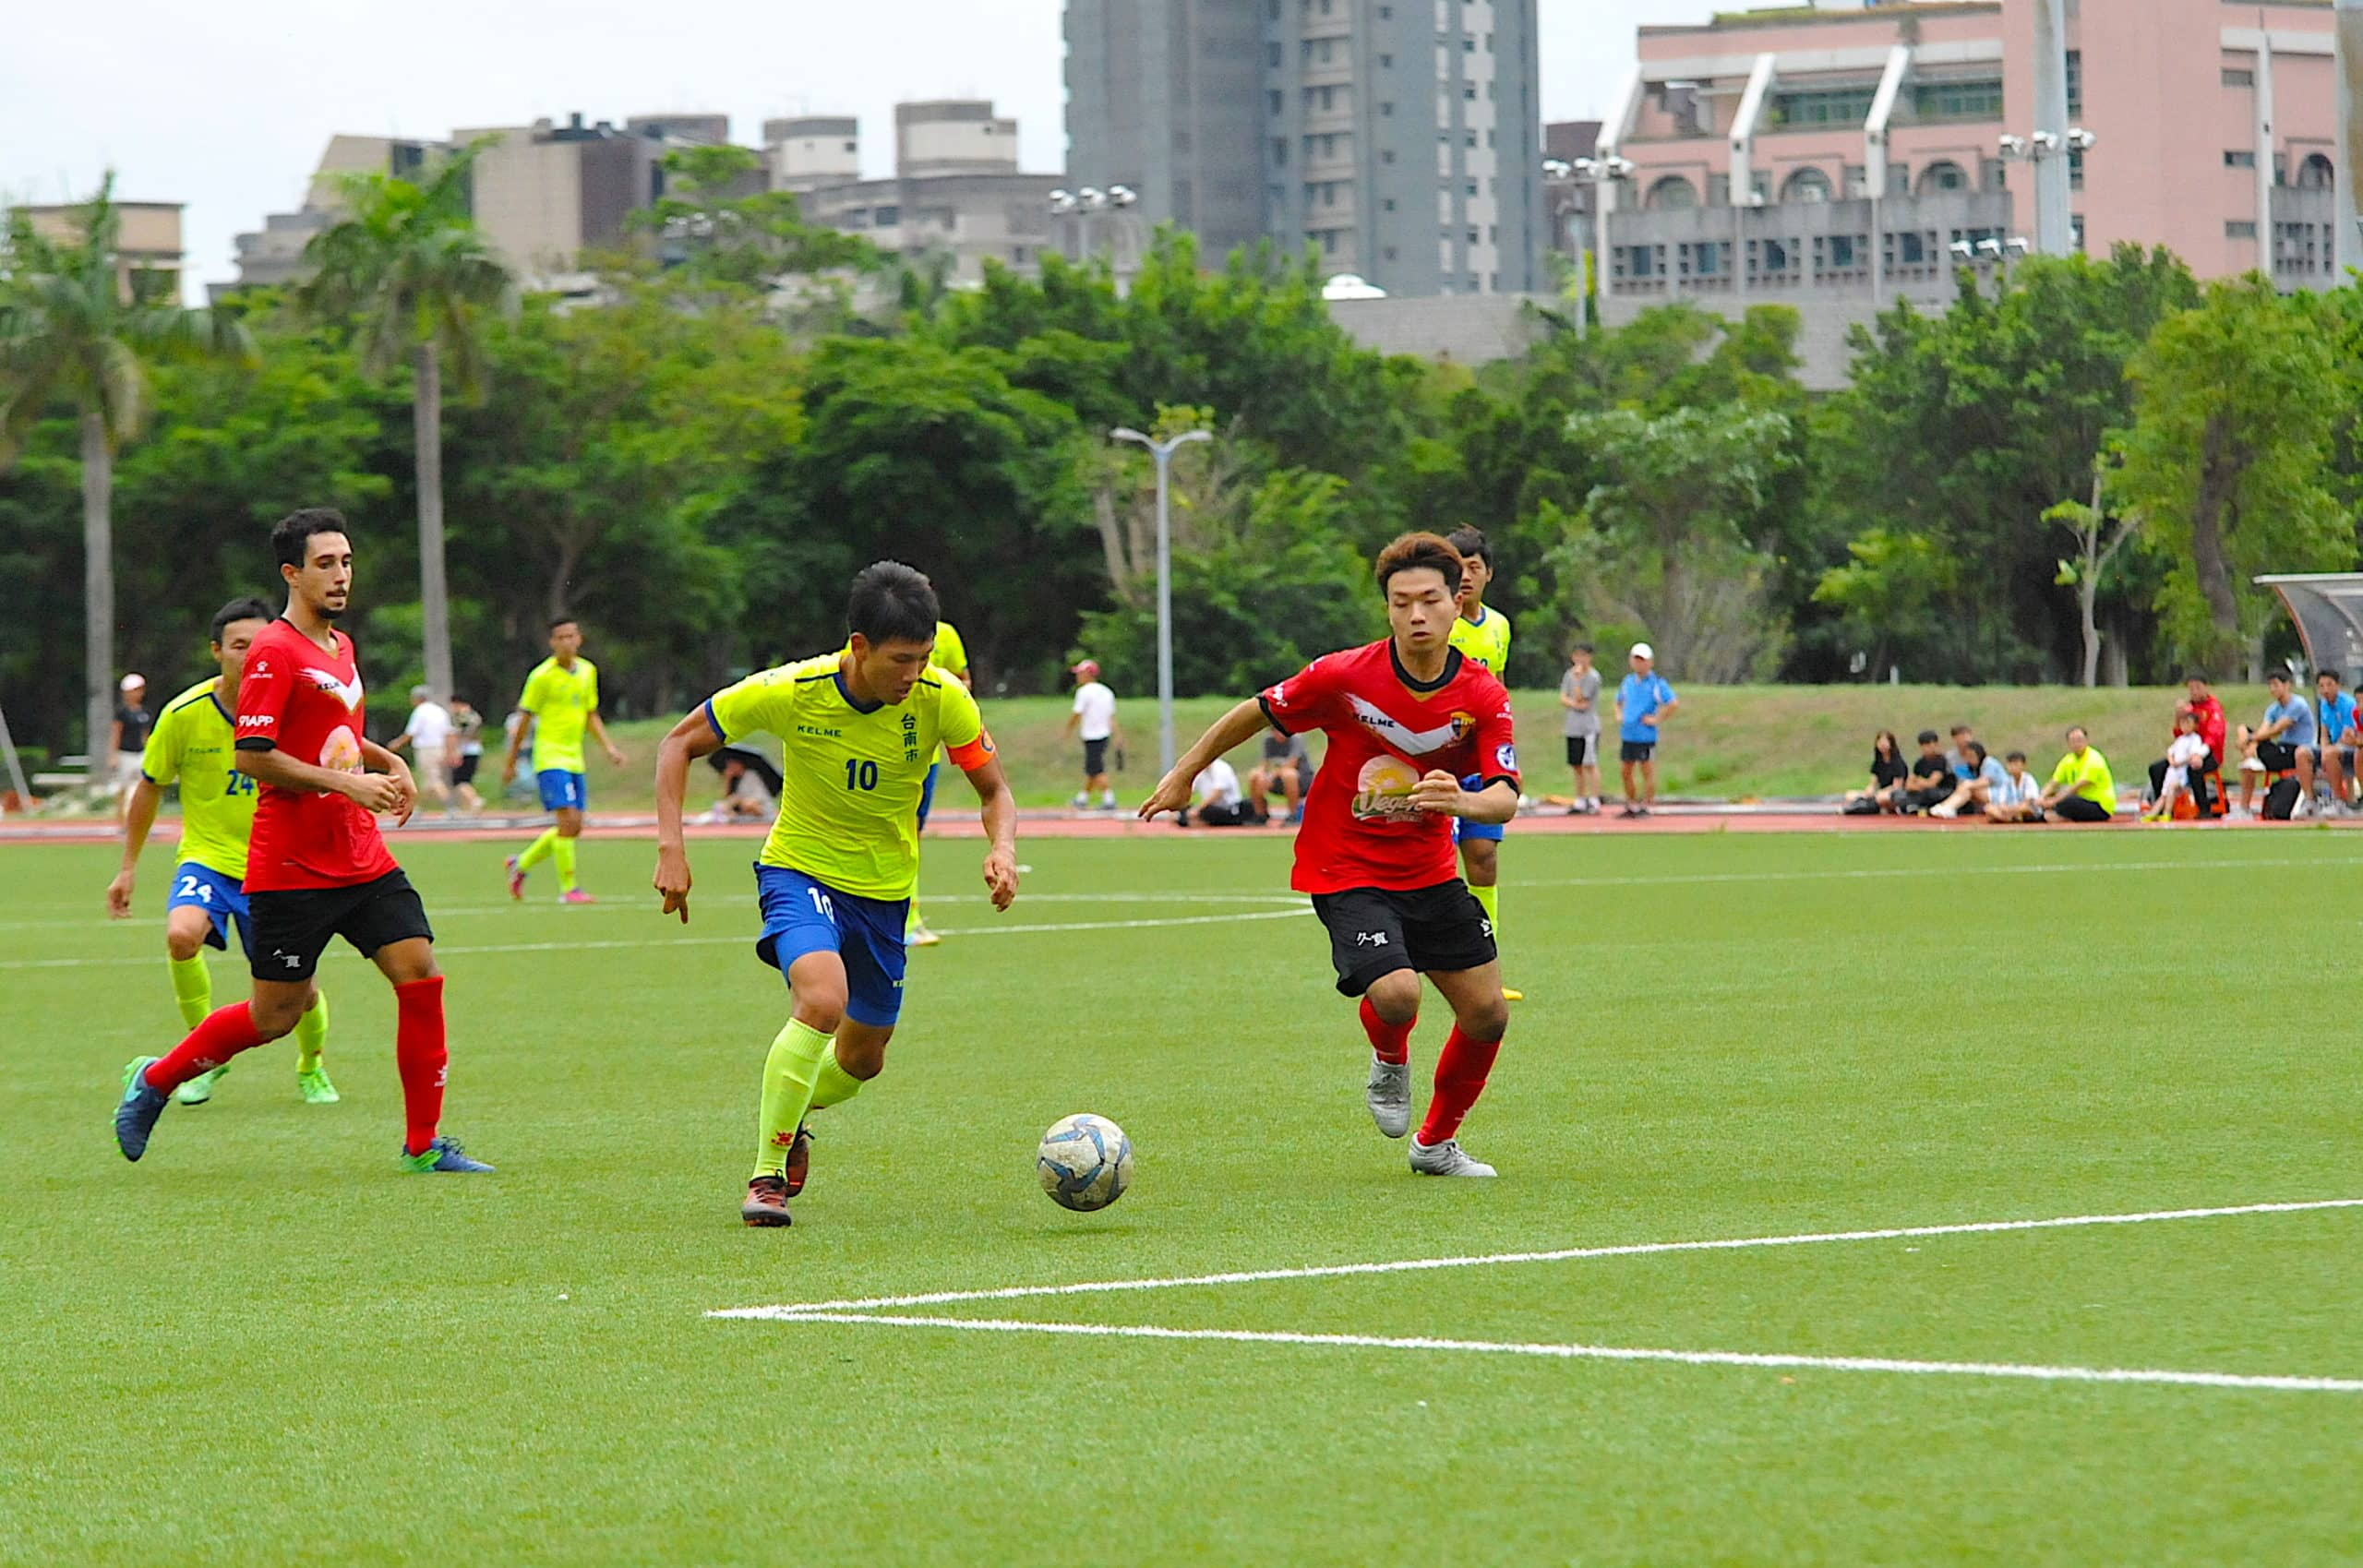 soi-keo-taiwan-steel-vs-red-lions-vao-15h-ngay-26-4-2020-1